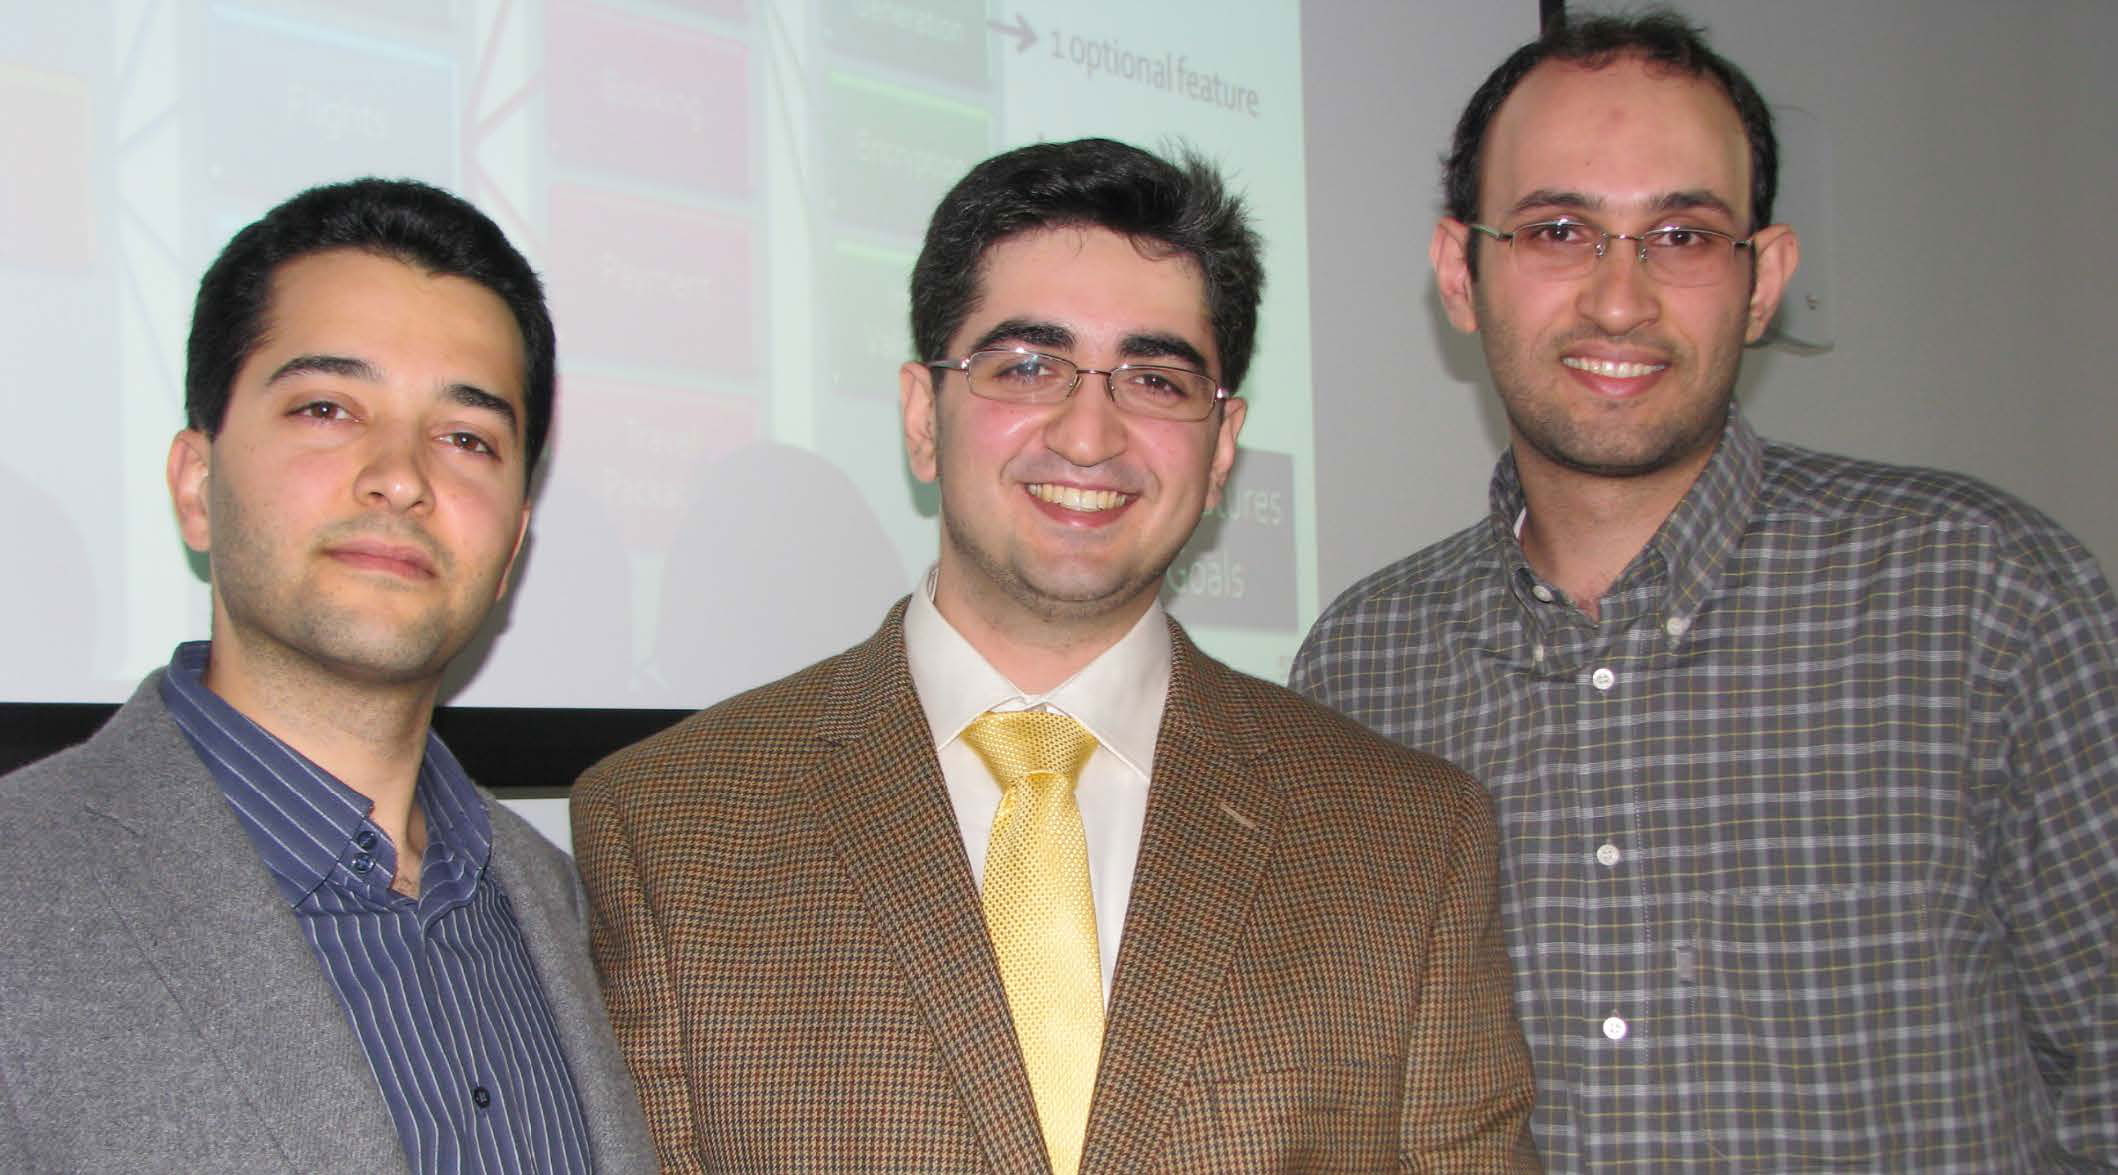 Sam Malek (left) with Ahmed M. Elkhodary and Naeem Esfahani in 2010.